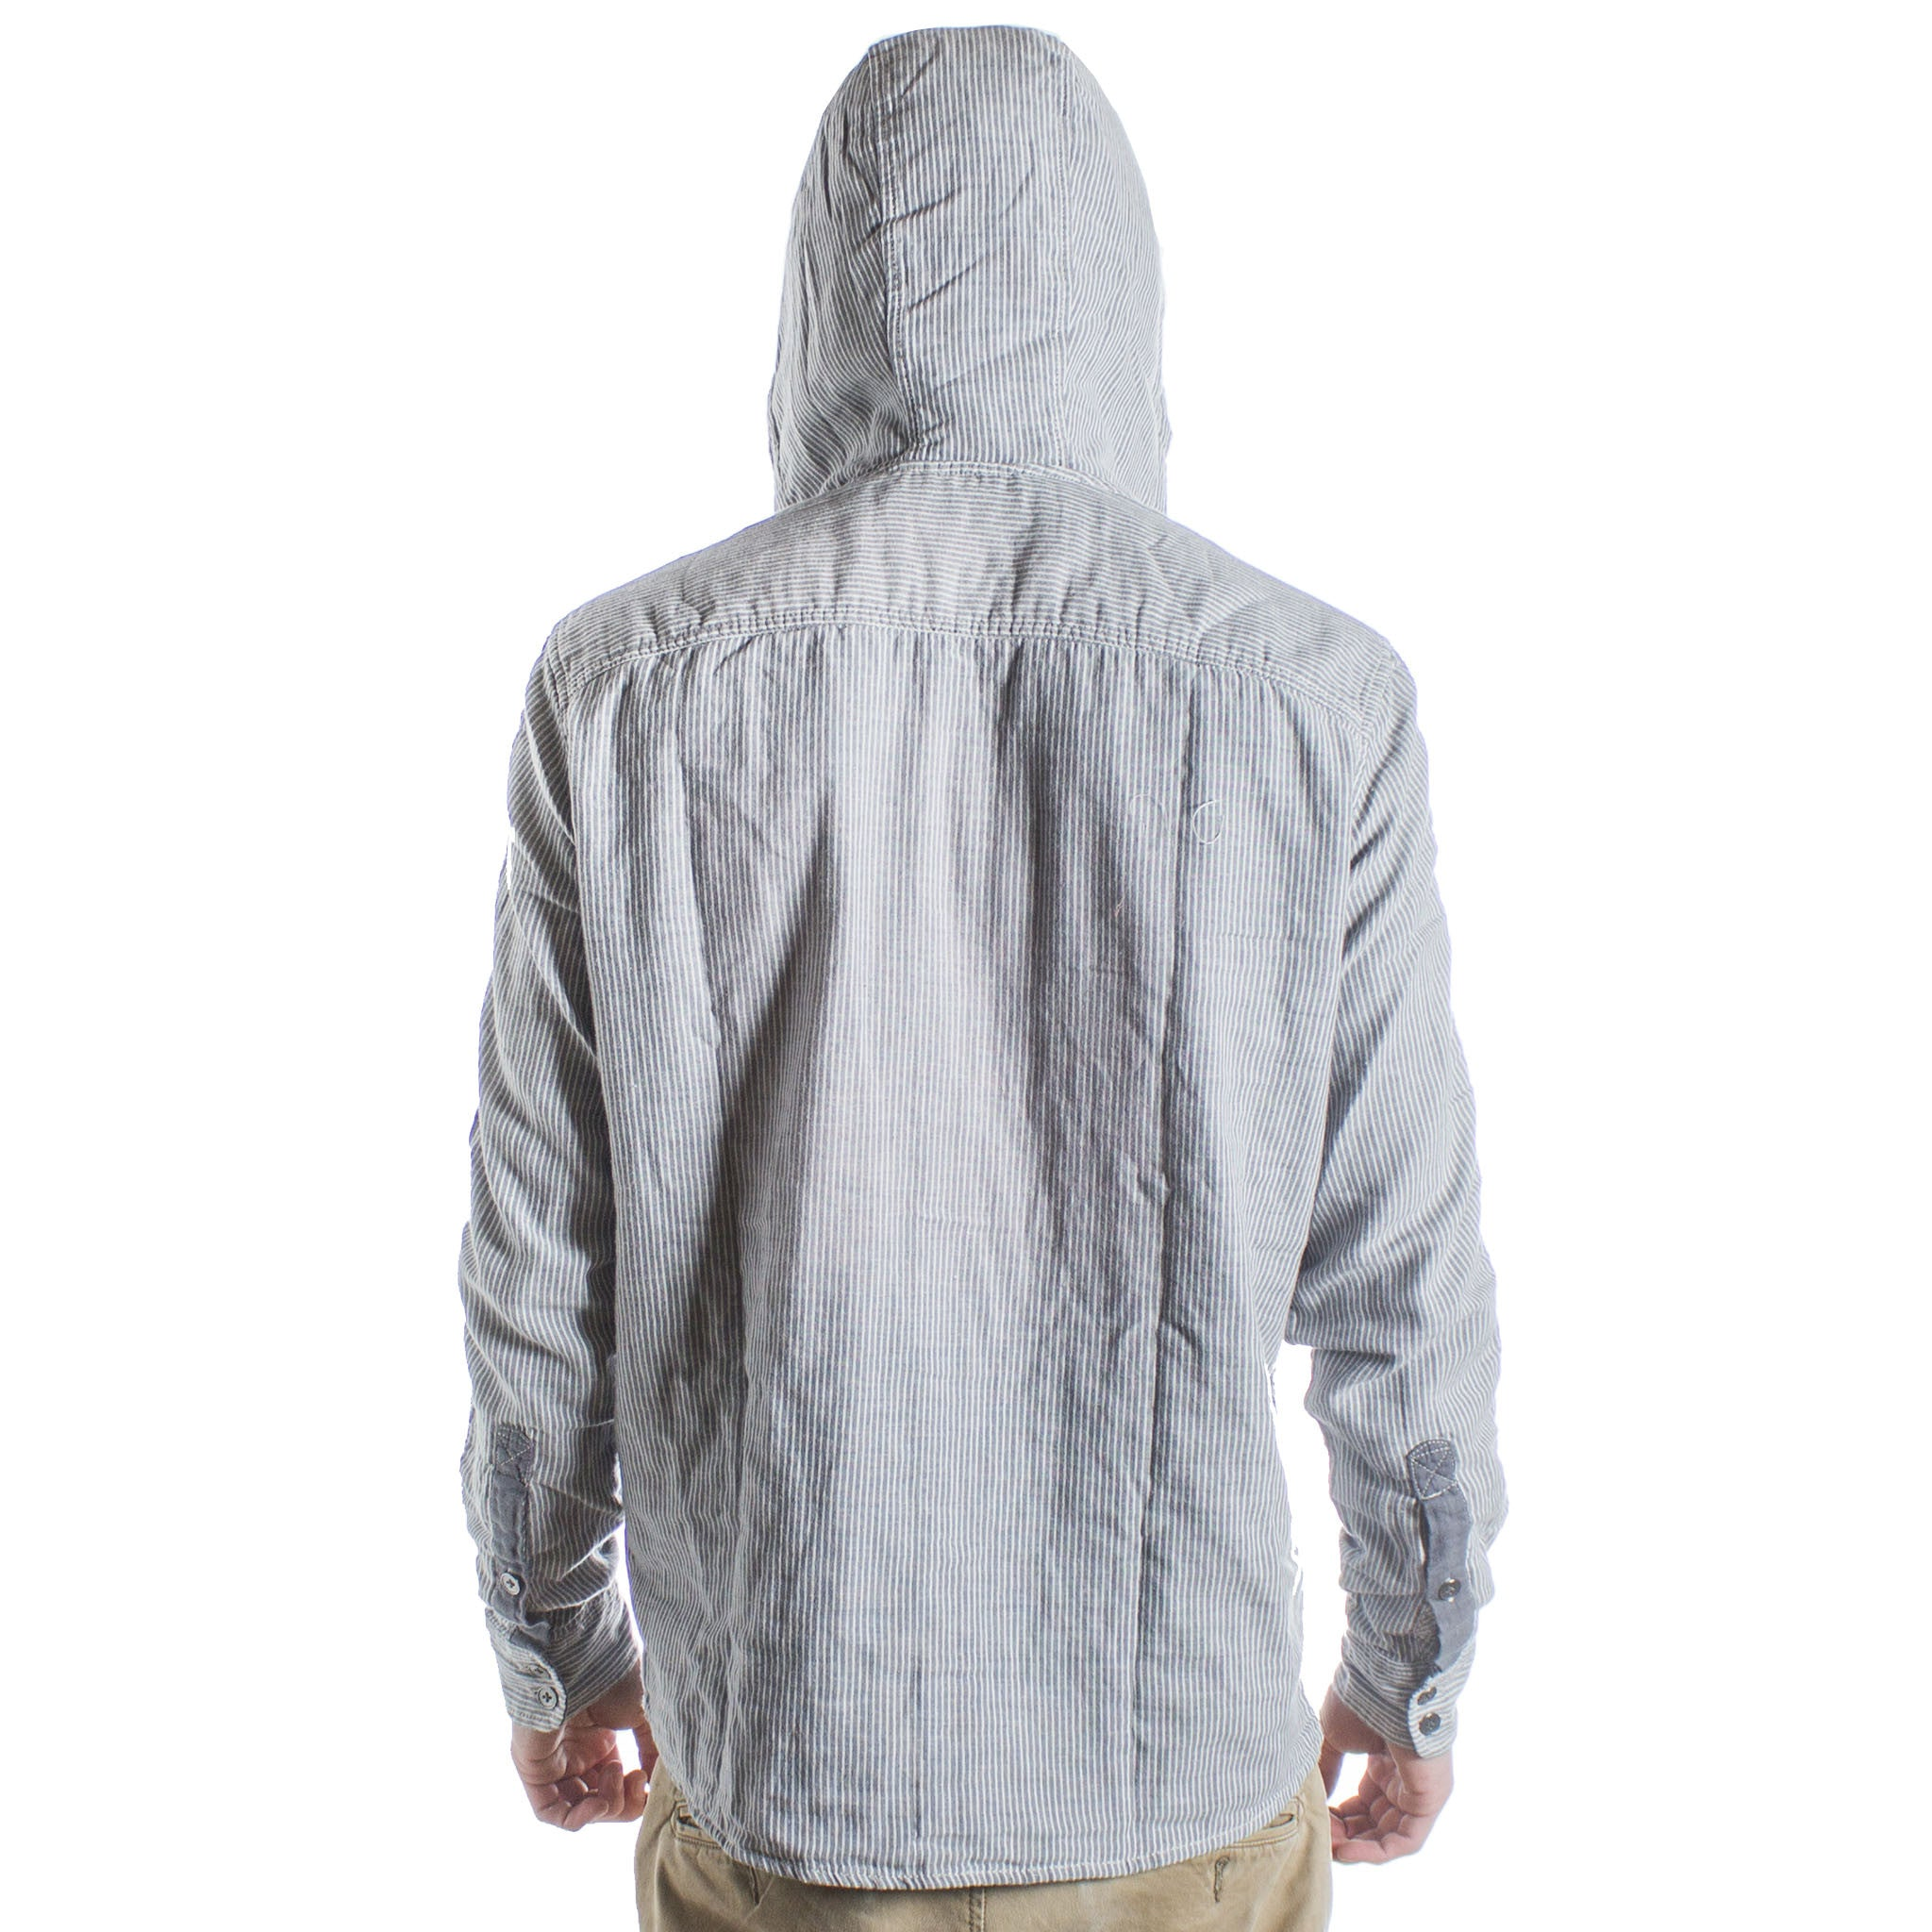 O'Riginals Marlin Shirt Grey - Stoked Boardshop  - 3